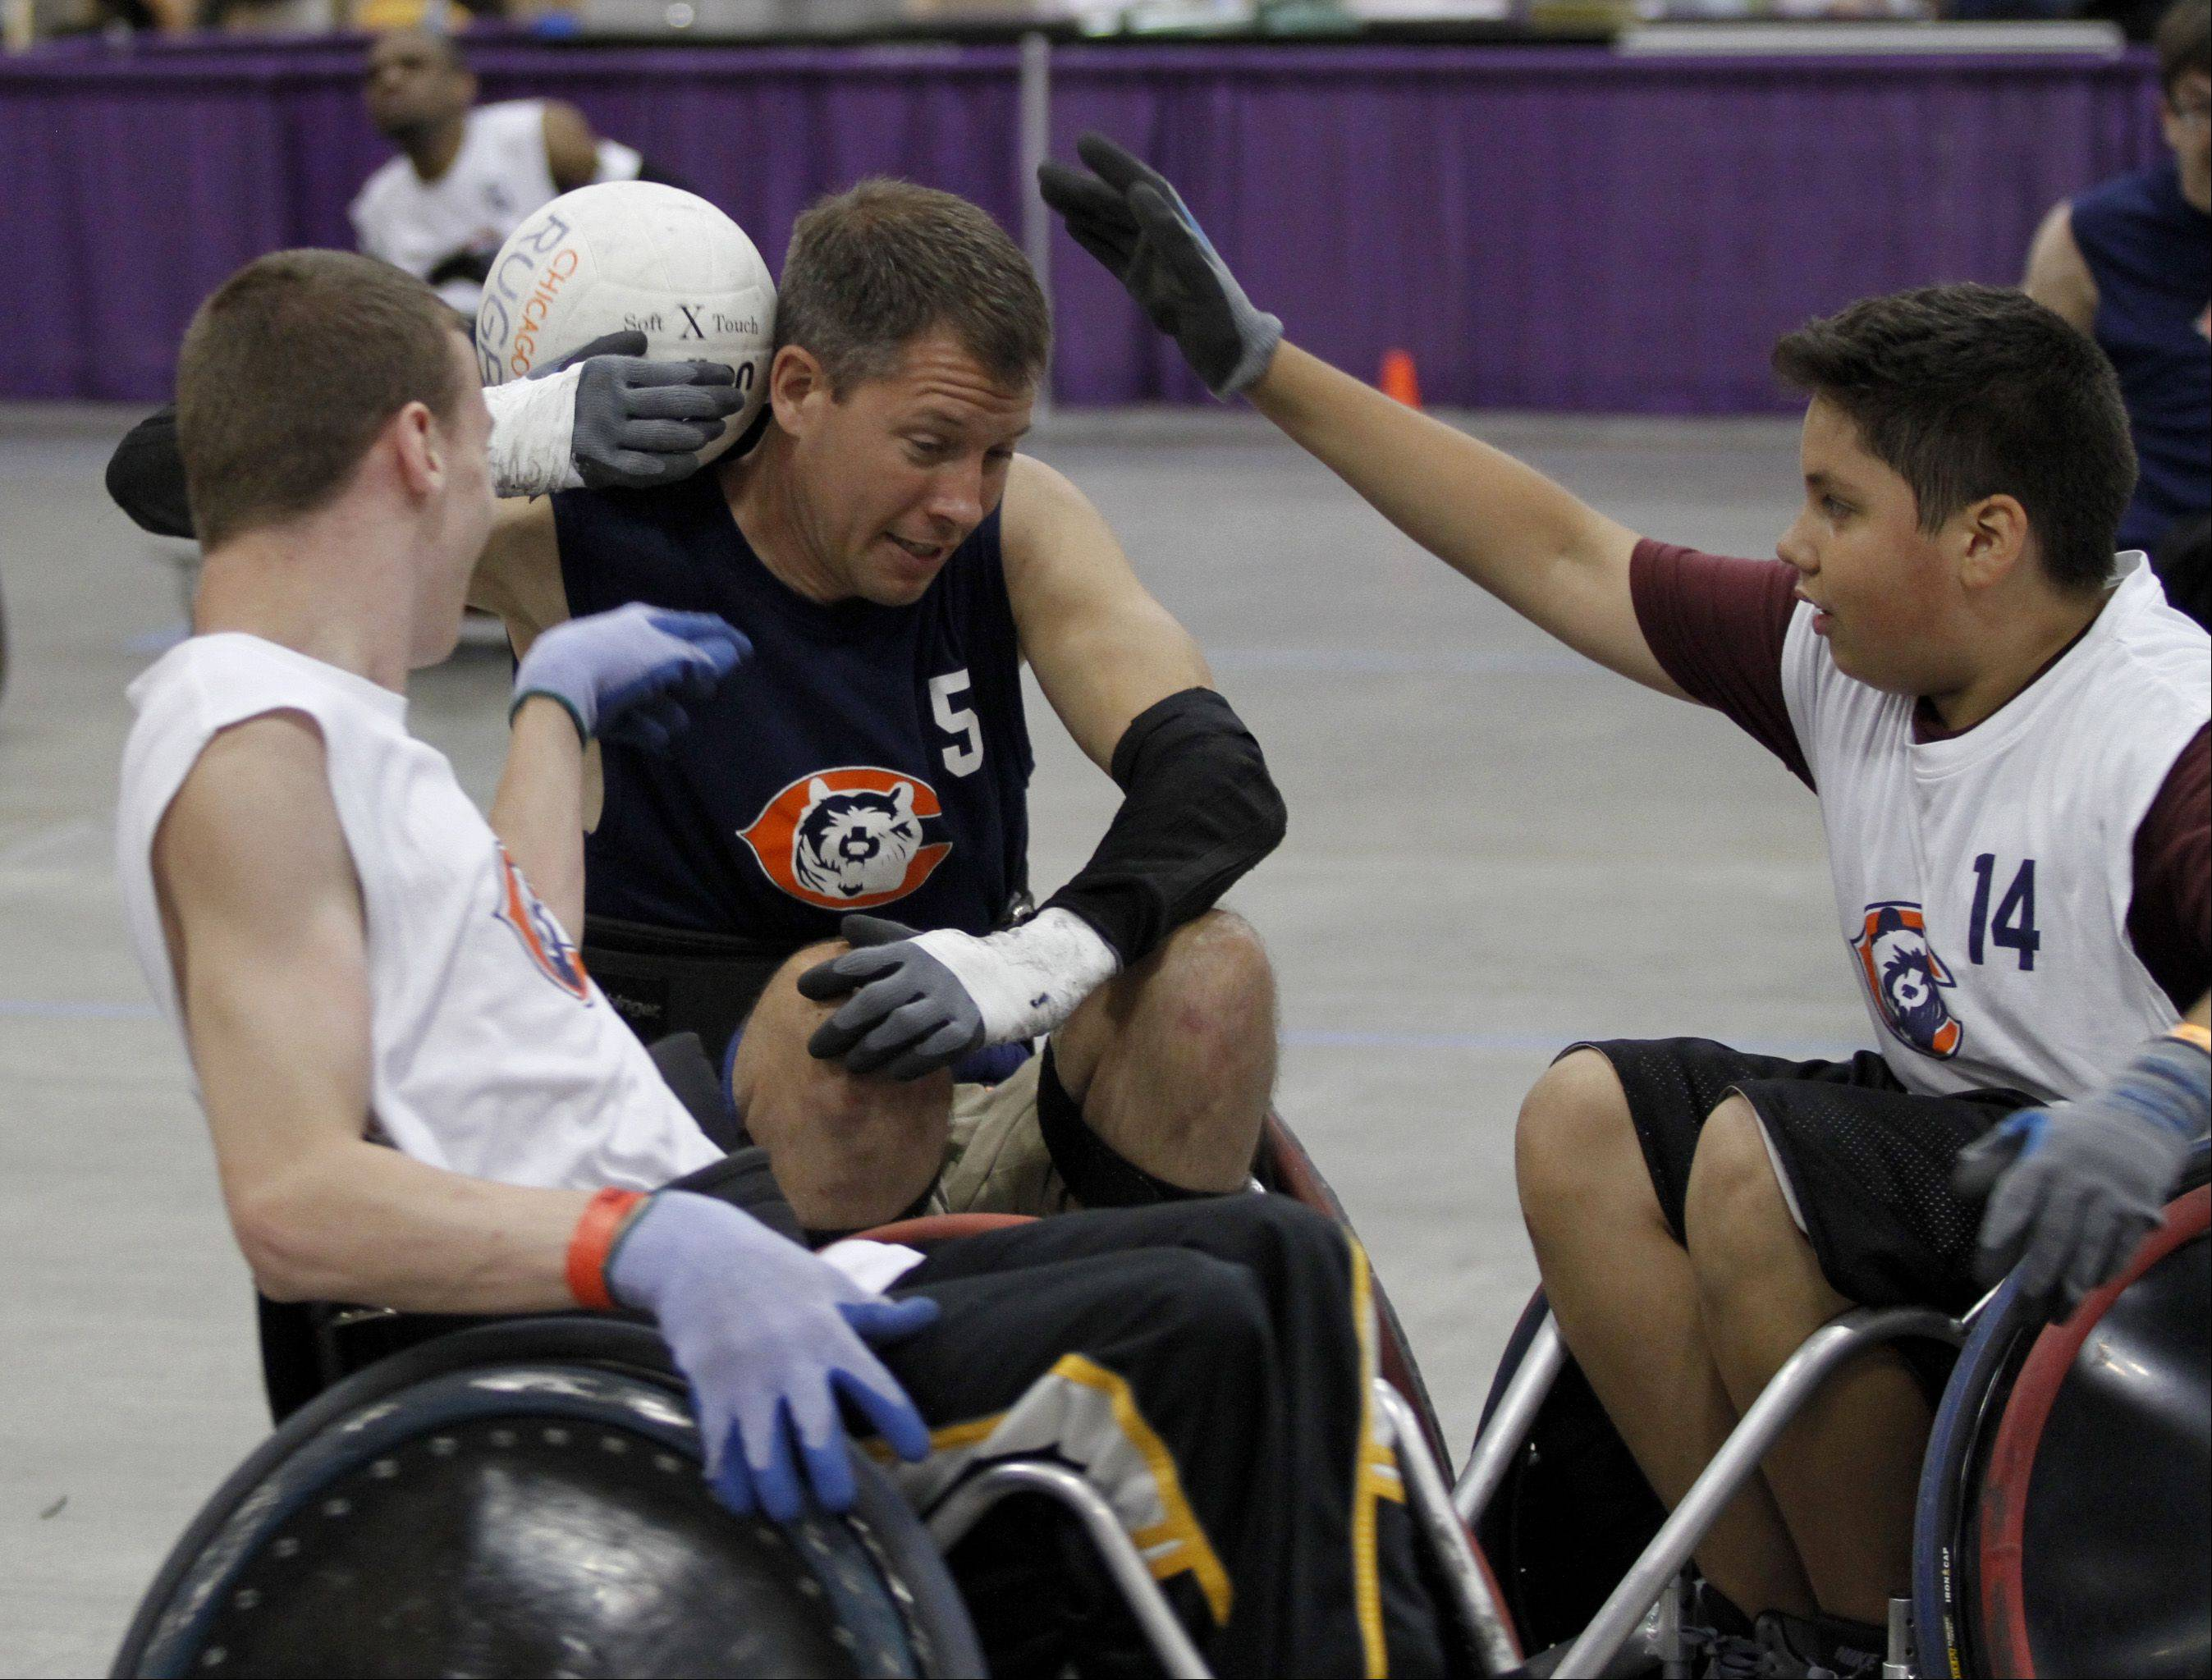 Dan Sauber, middle, tries to keep the ball away from opponents Matt Molenkamp, left, of Itasca, and Fernando Duarte, right, 13, of Cicero. The three are part of a wheelchair rugby team sponsored by the Rehab Institute of Chicago and the Chicago Bears.